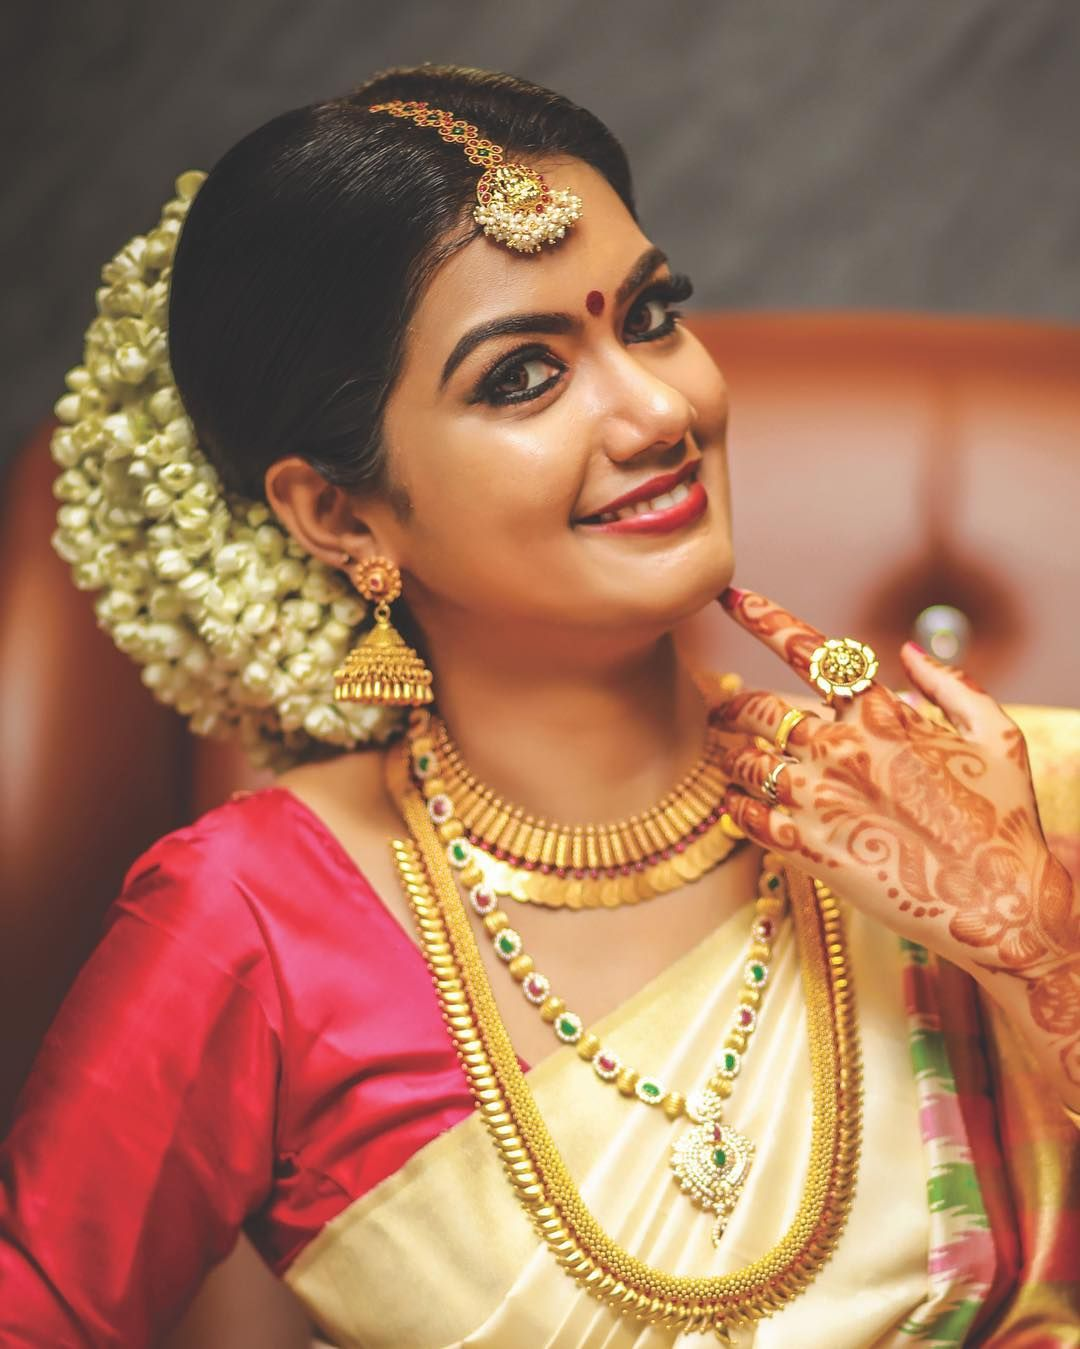 Wedding Hairstyle For Kerala Bride: 1,508 Likes, 3 Comments